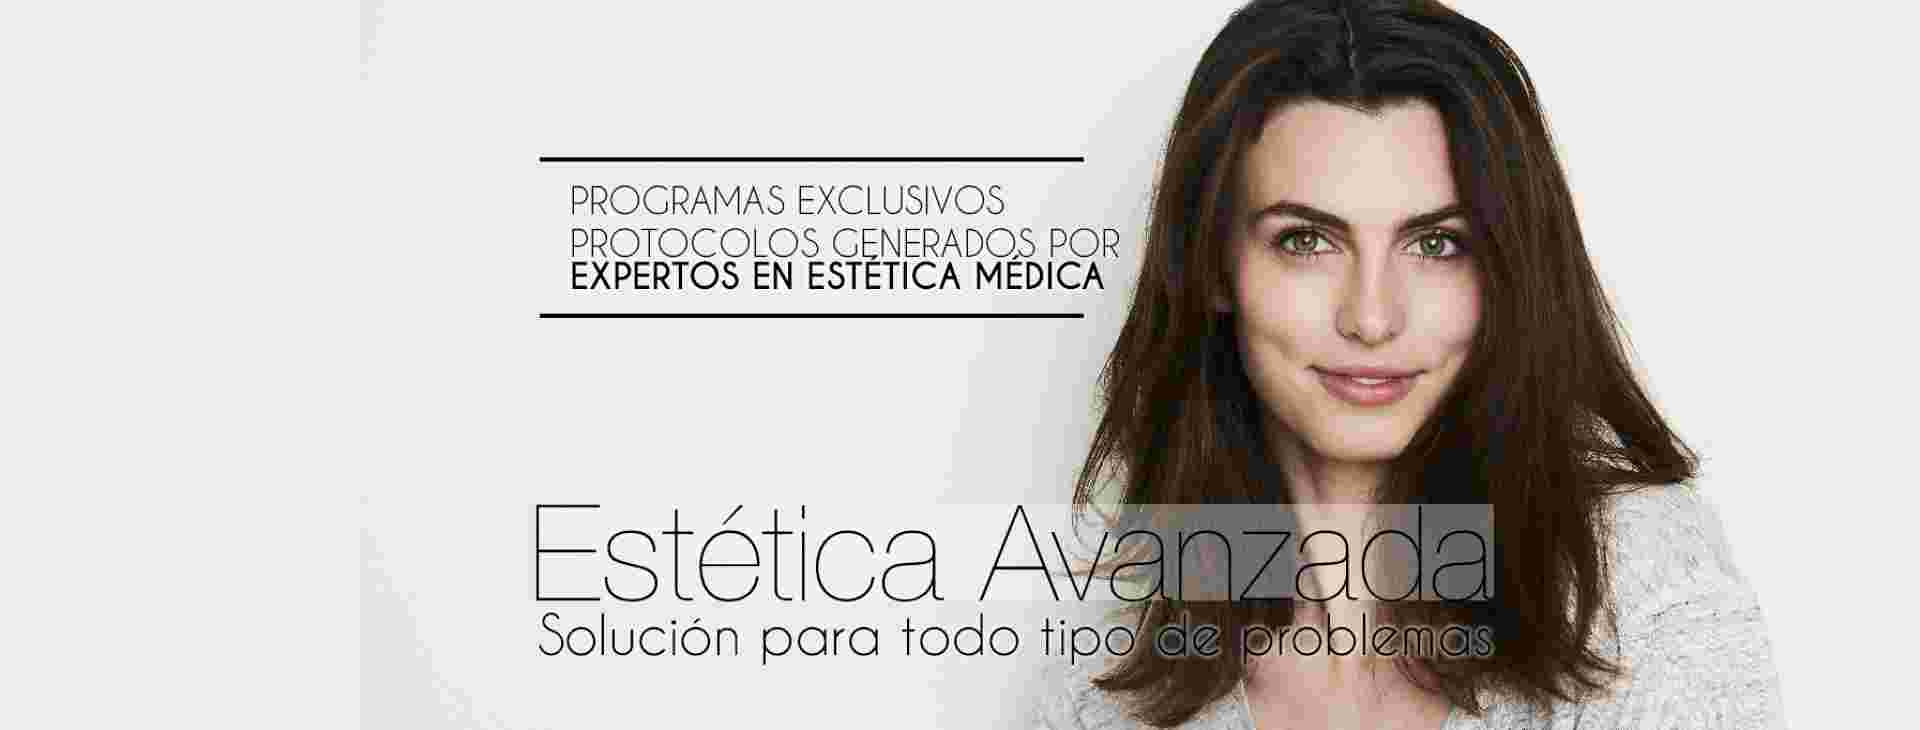 Be Beauty, estética avanzada